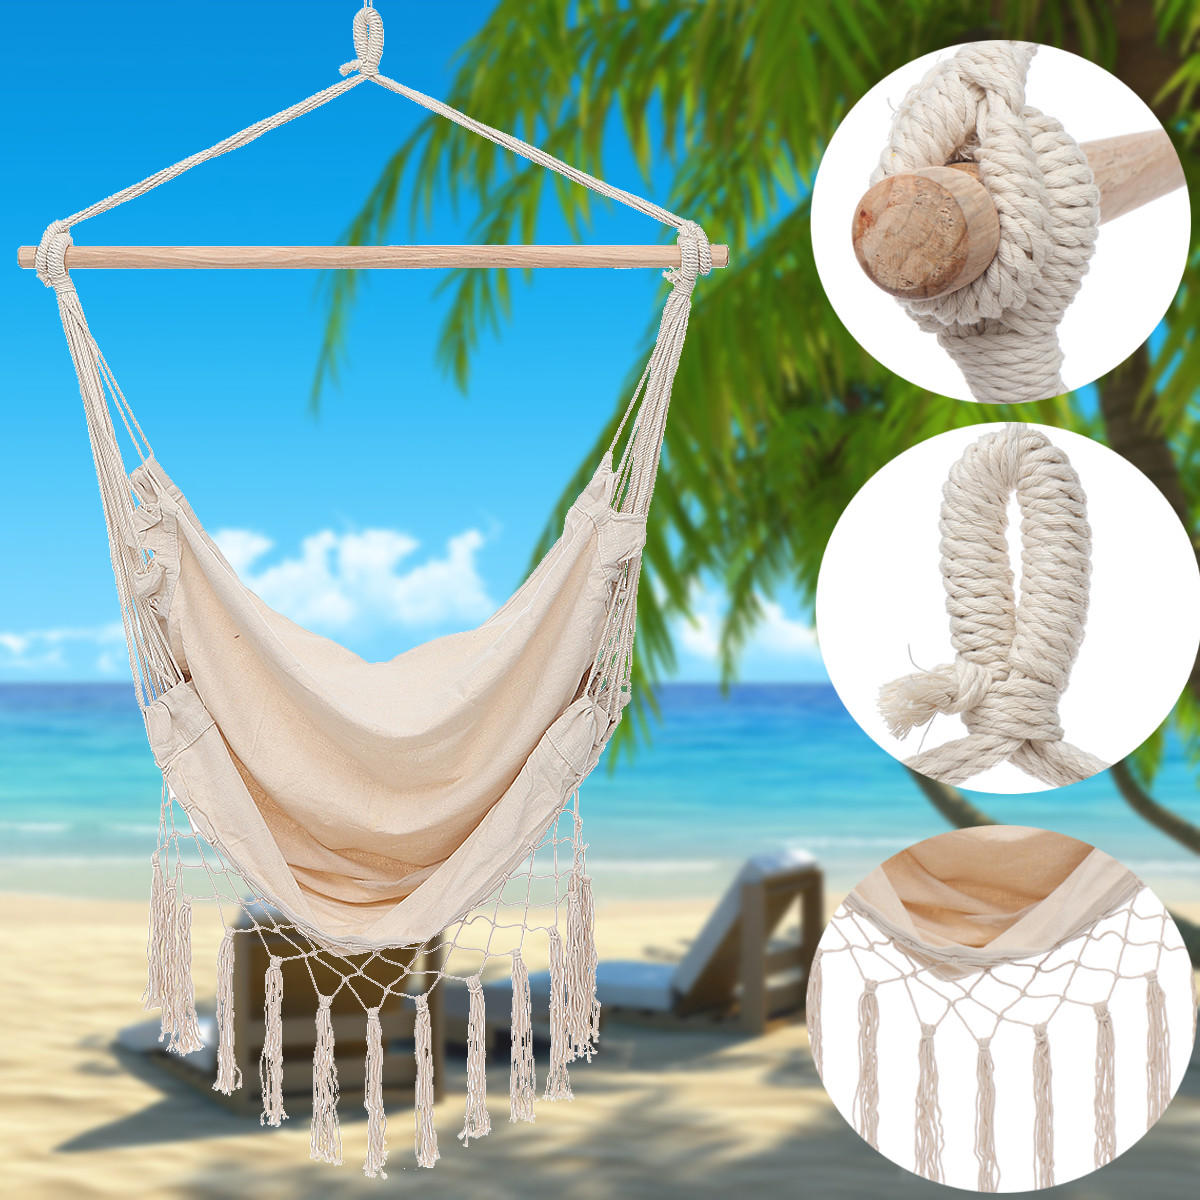 Canvas Swing Hanging Hammock Chair Cotton Rope Tassel Tree Chair Seat Patio Outdoor